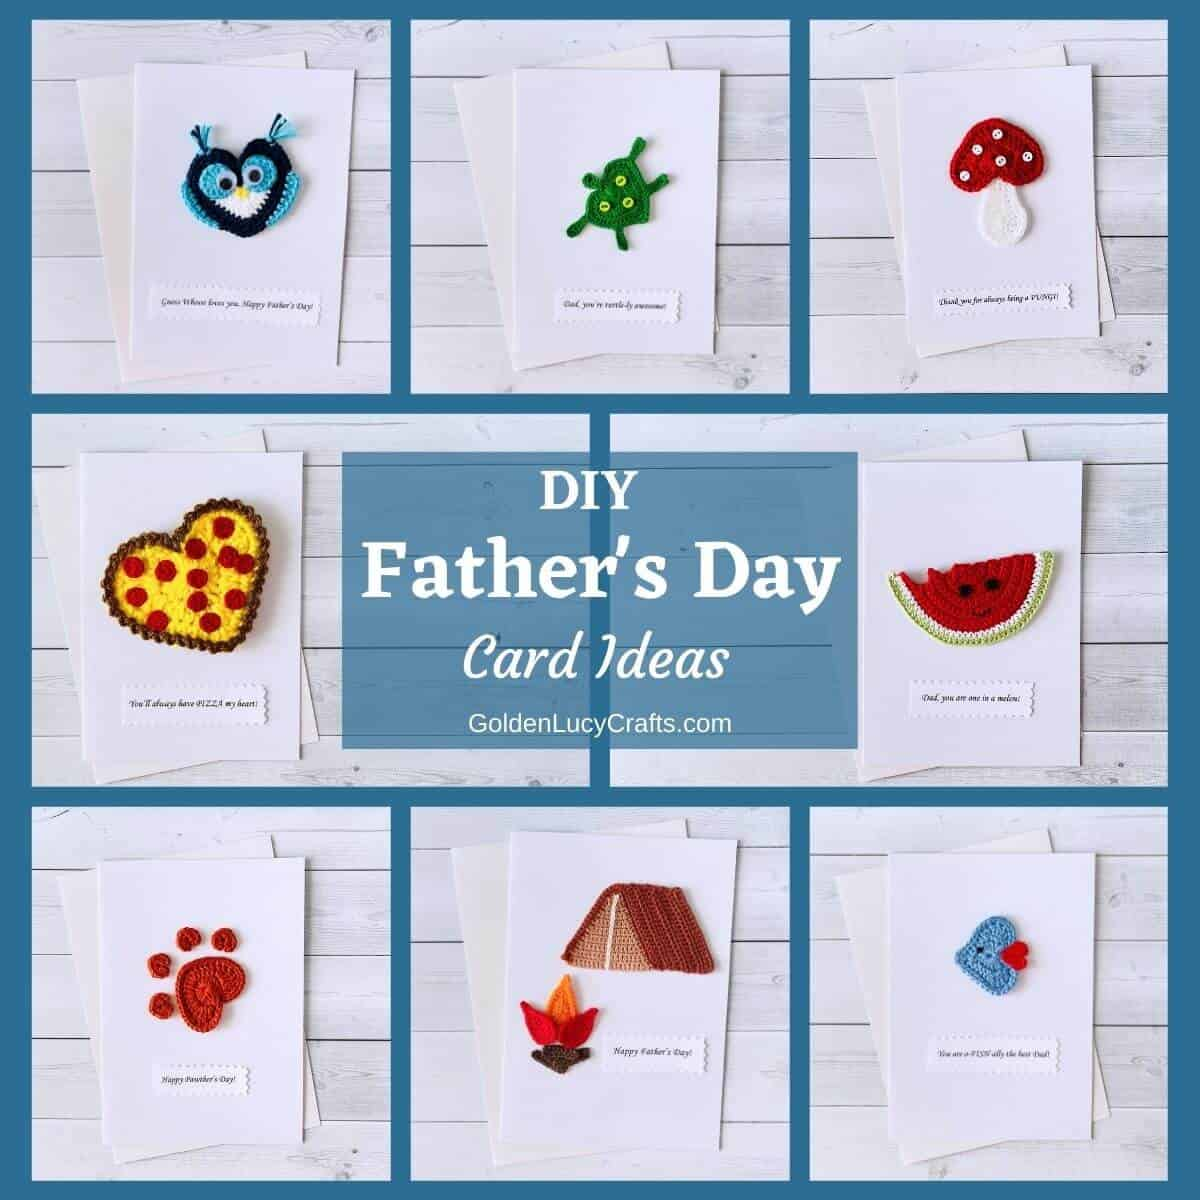 Photo collage of handmade Father's Day cards embellished with crochet appliques.